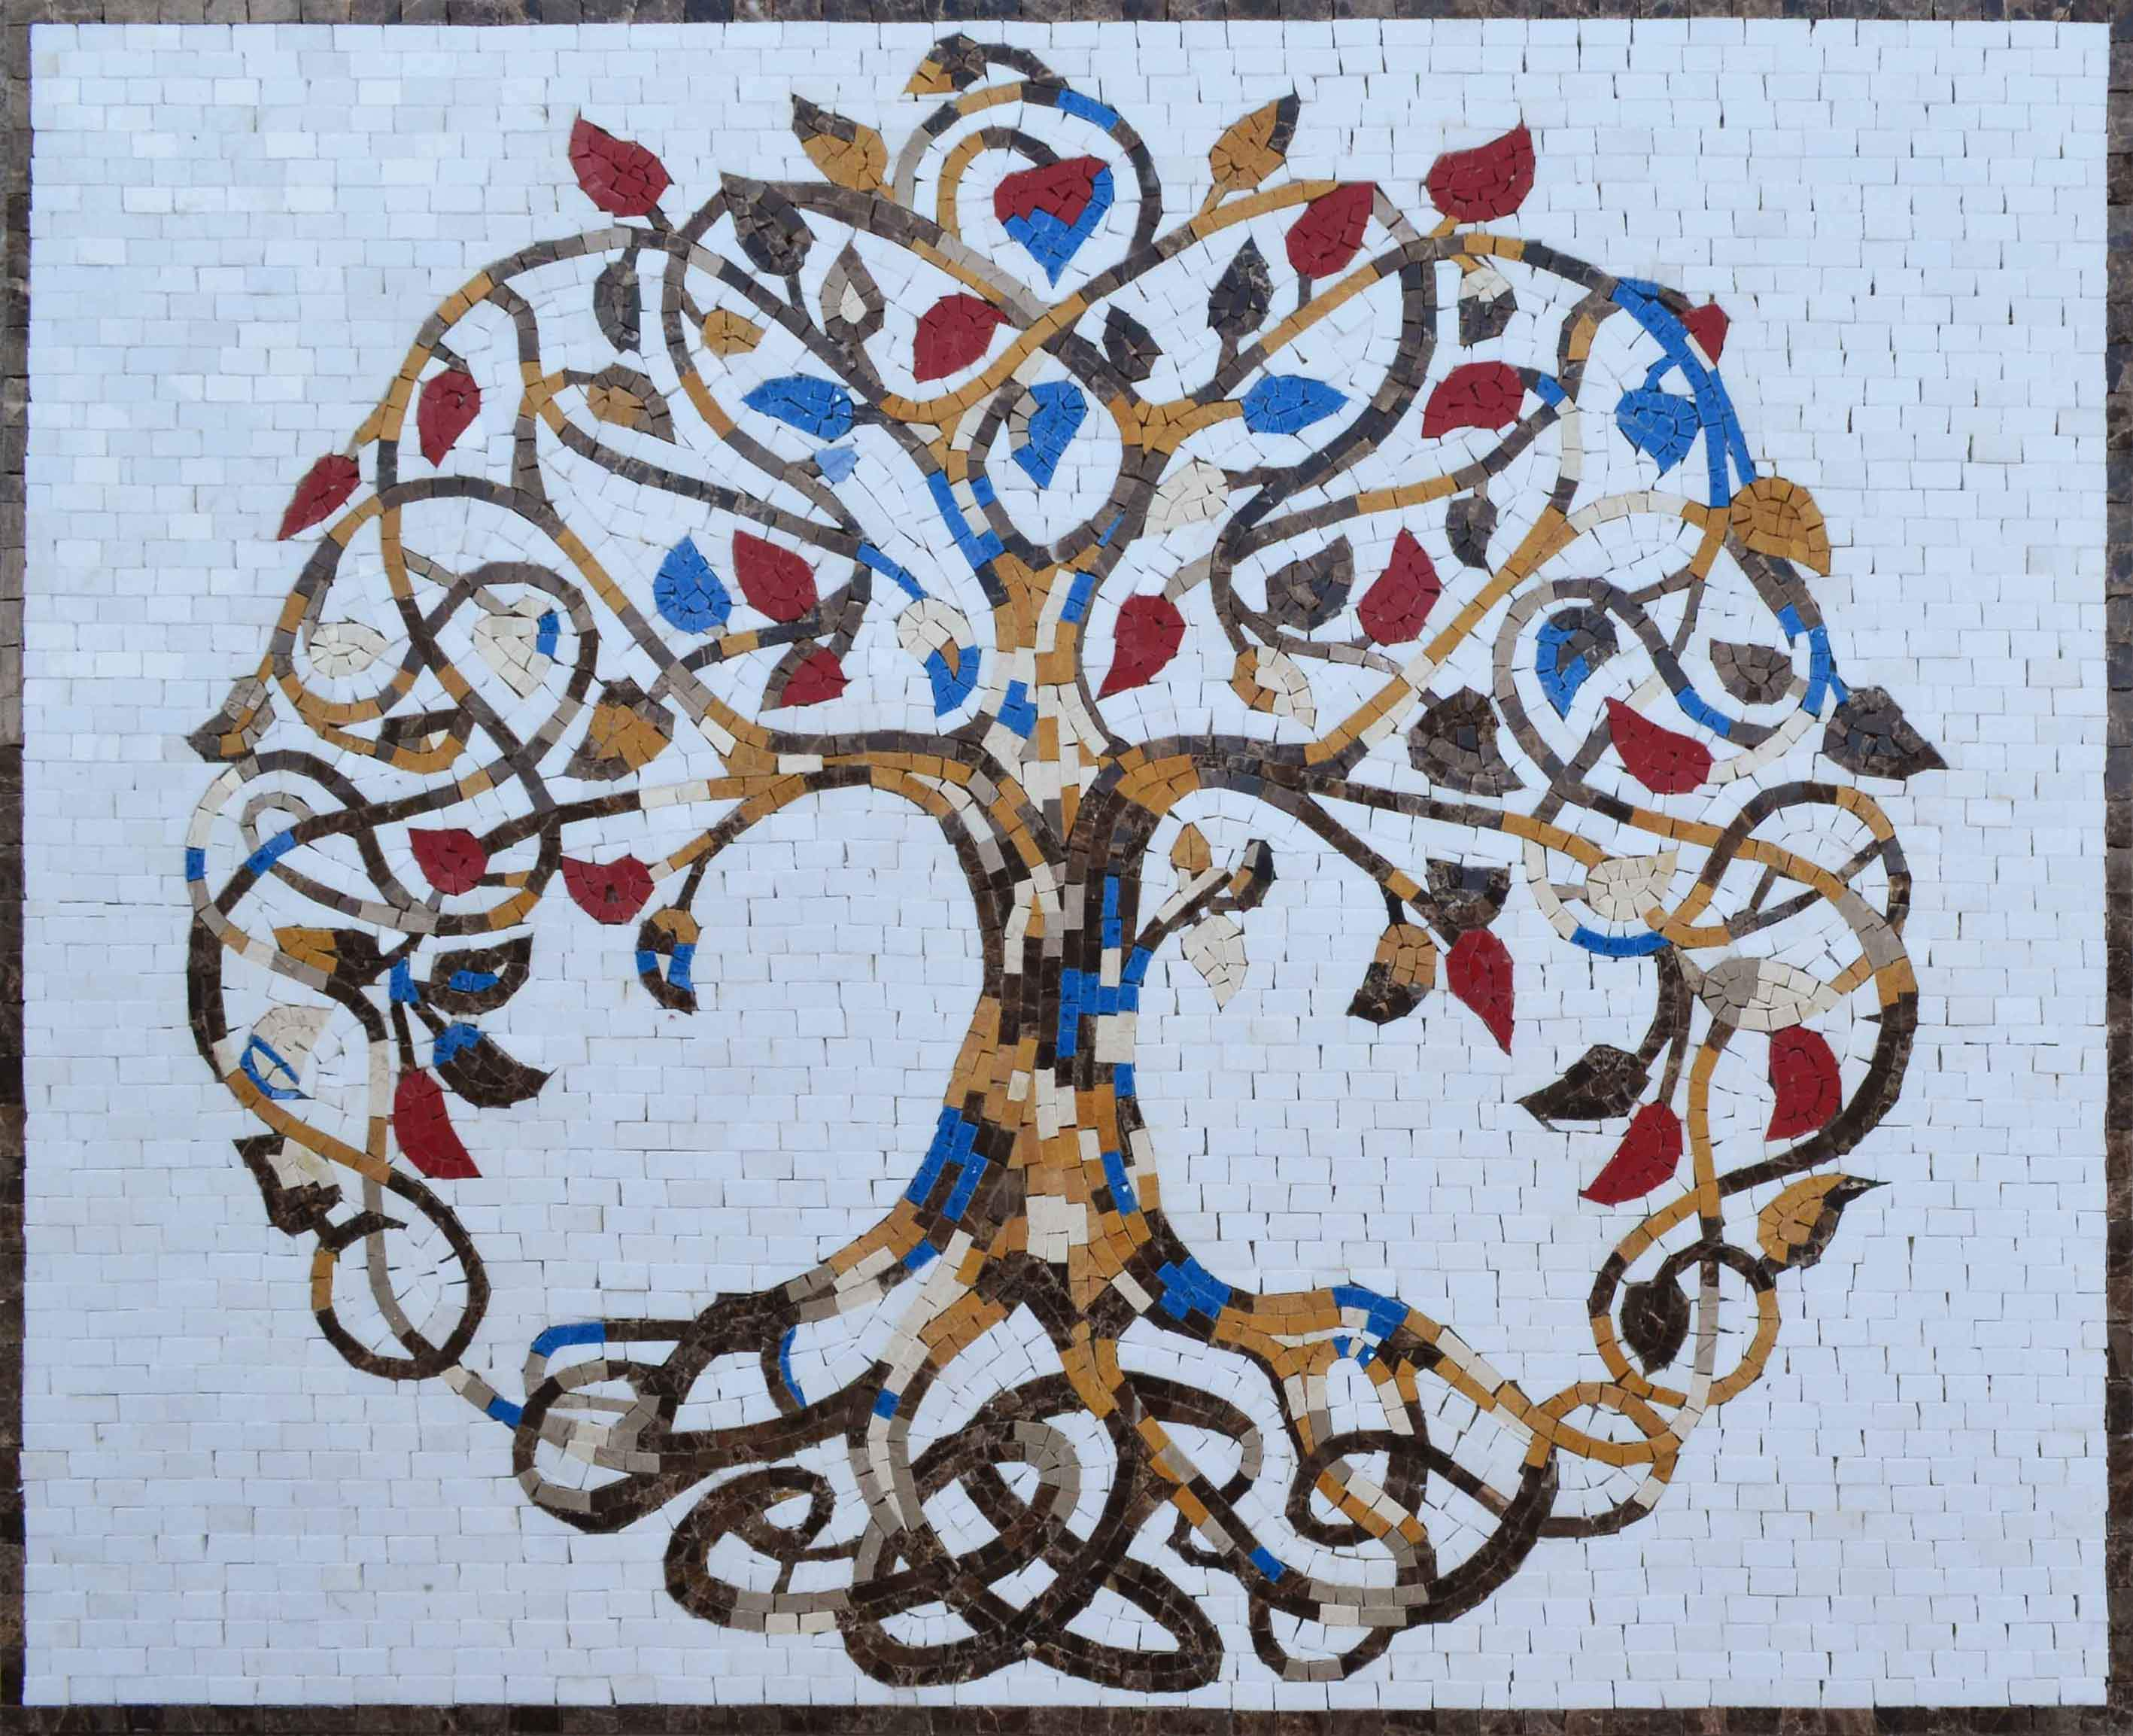 Exquisite Tree of Life - Mosaic Art